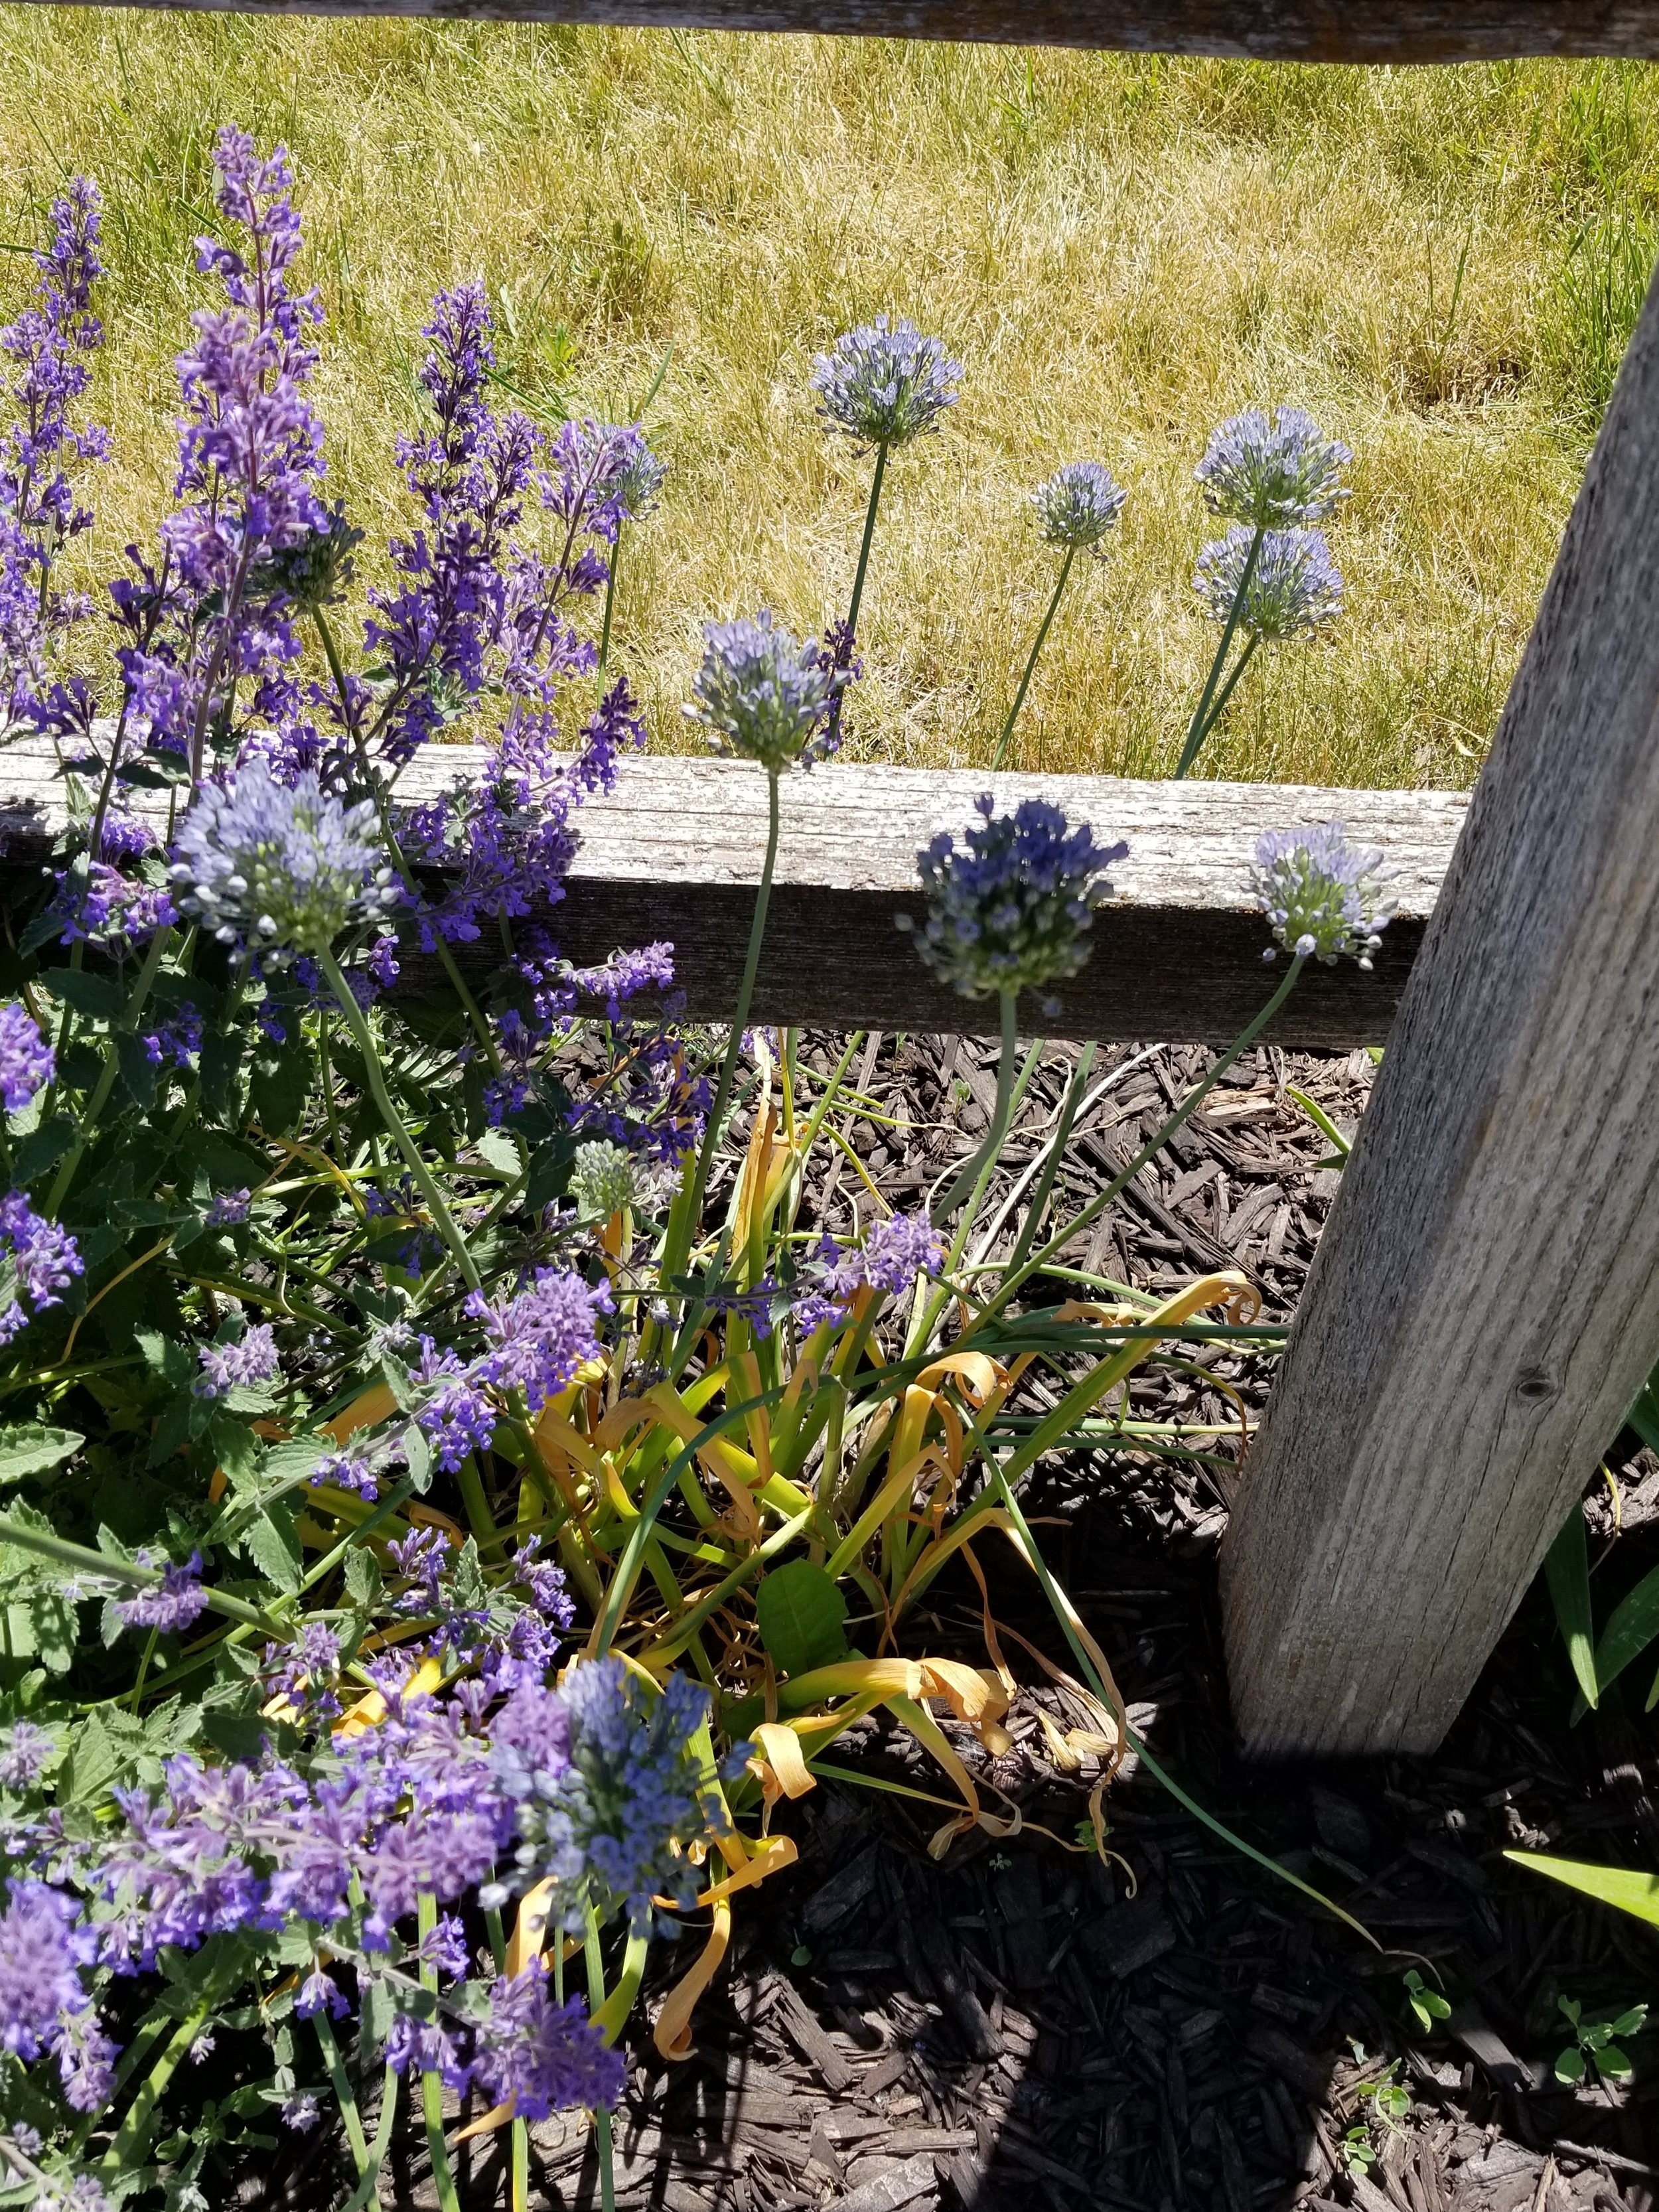 My blue alliums have also started blooming, though they are a little harder to get in a picture.